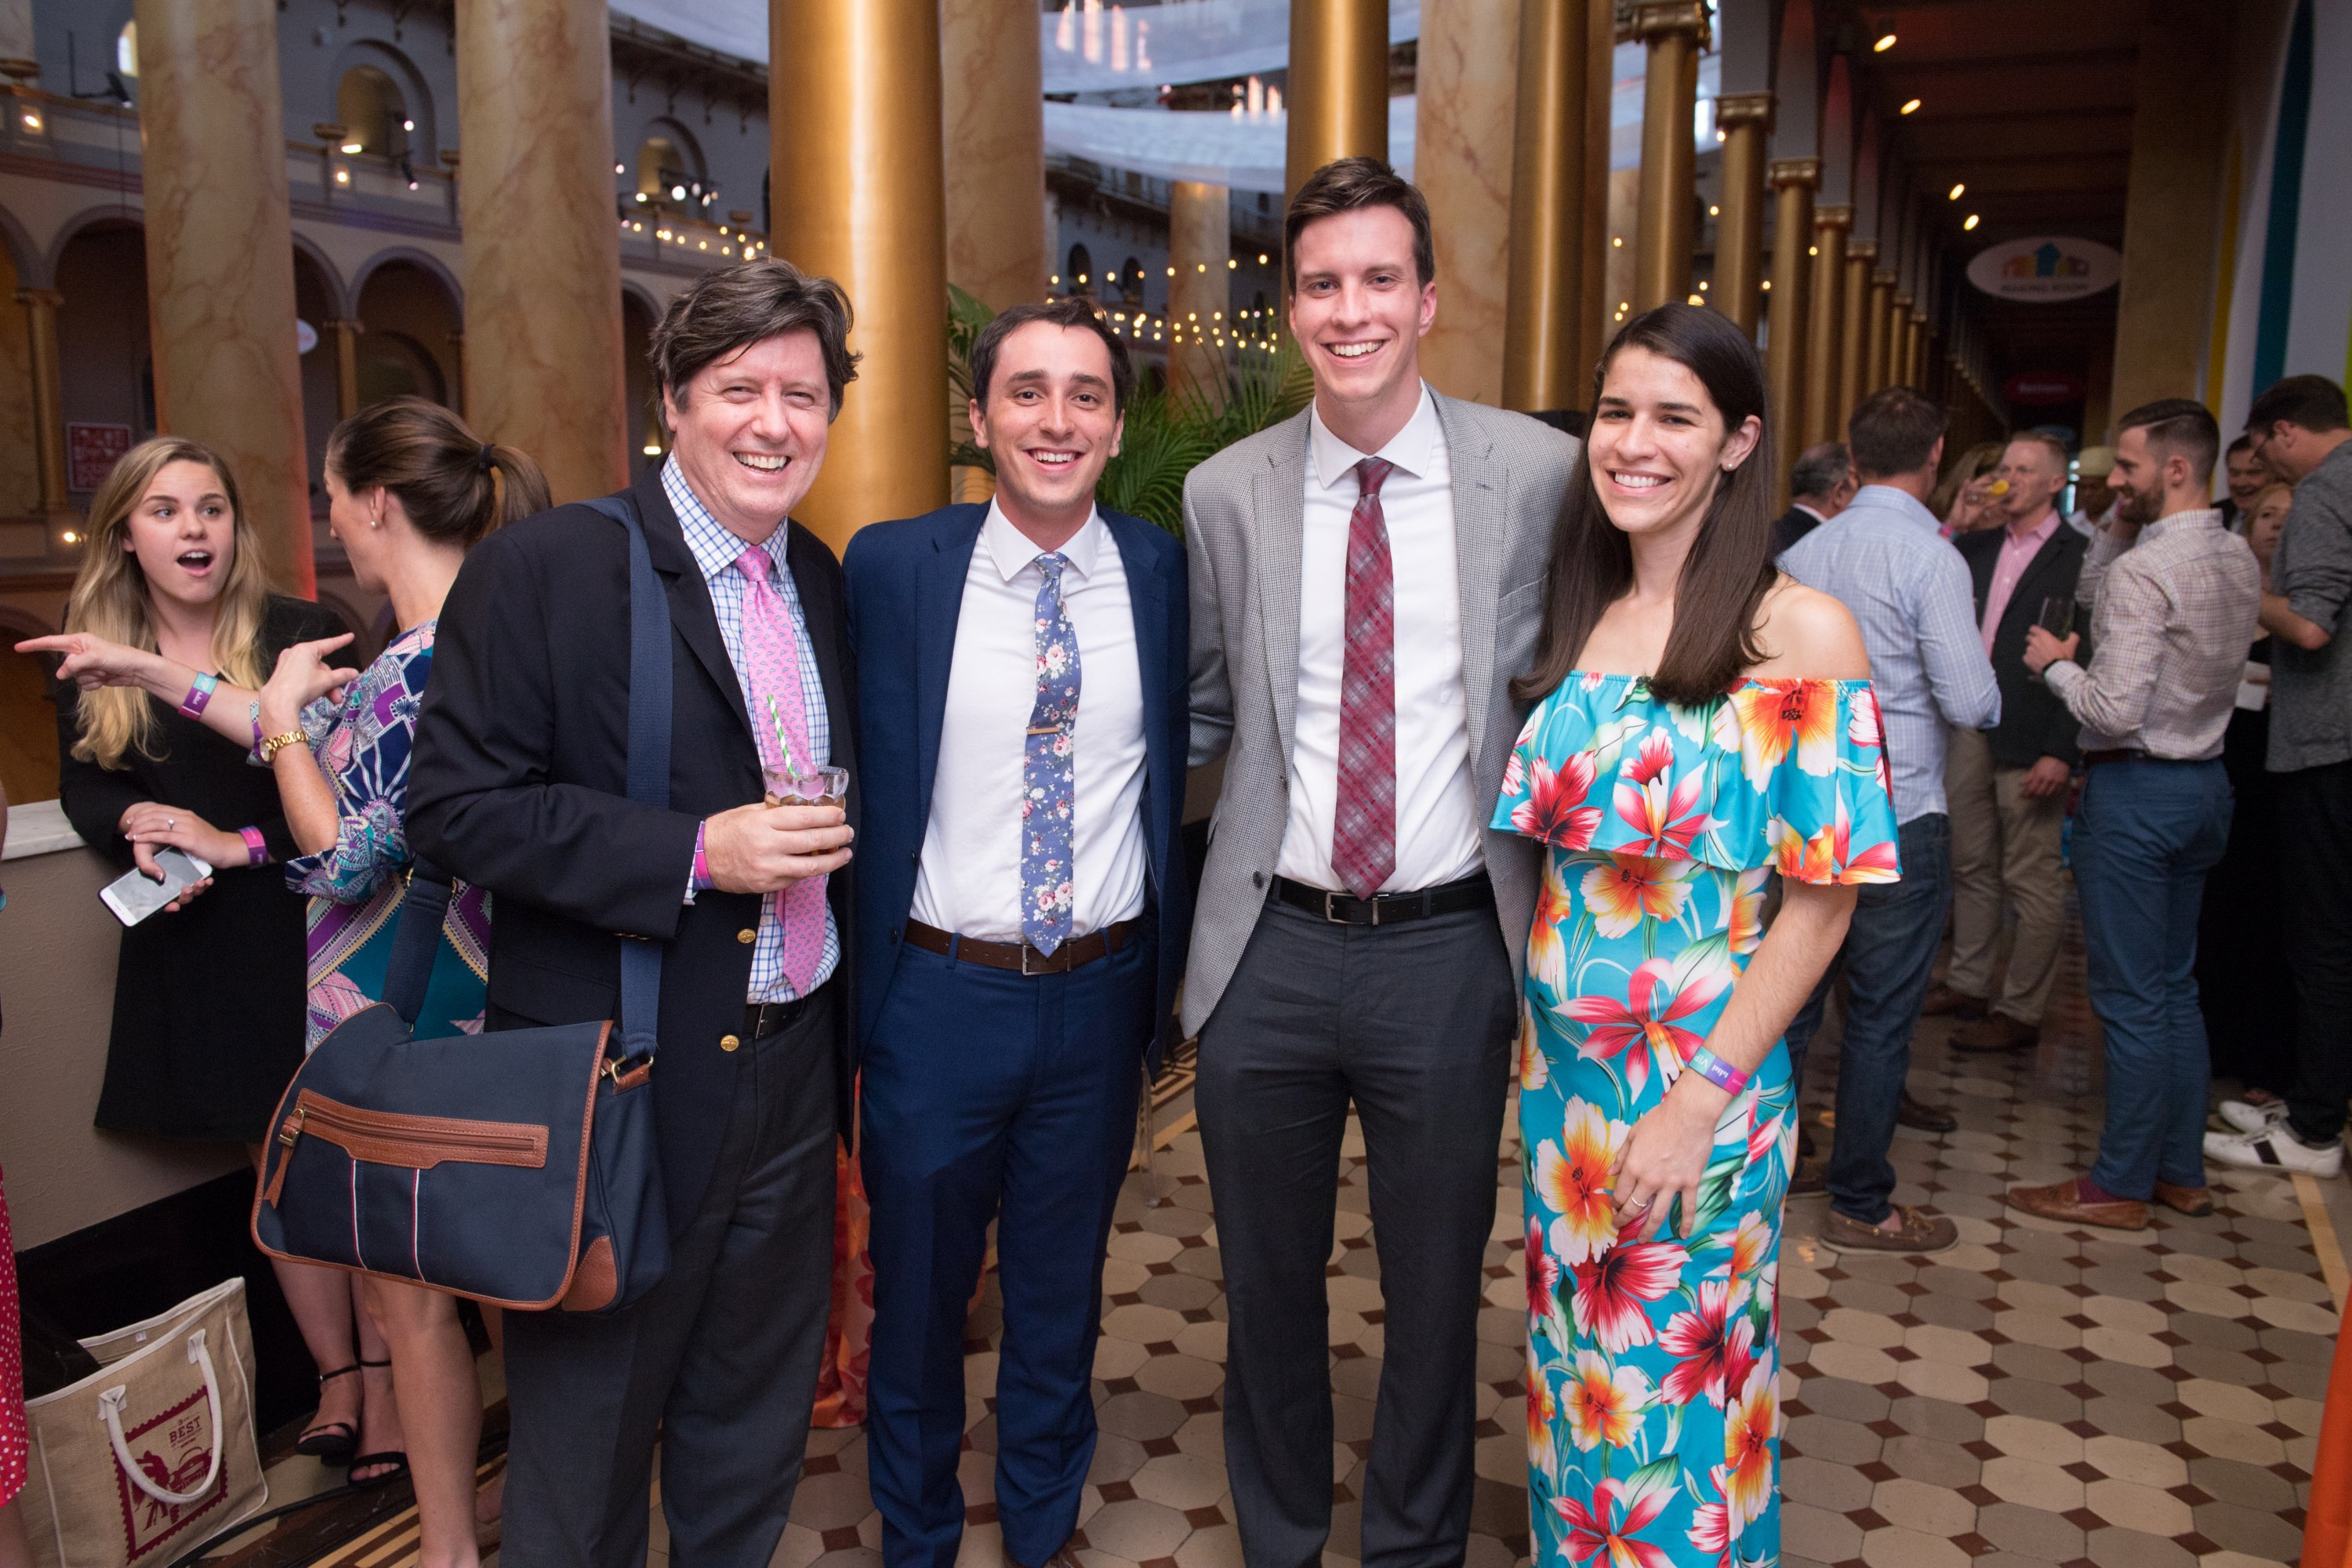 Photos from the 2018 AT&T Best of Washington Party images 30